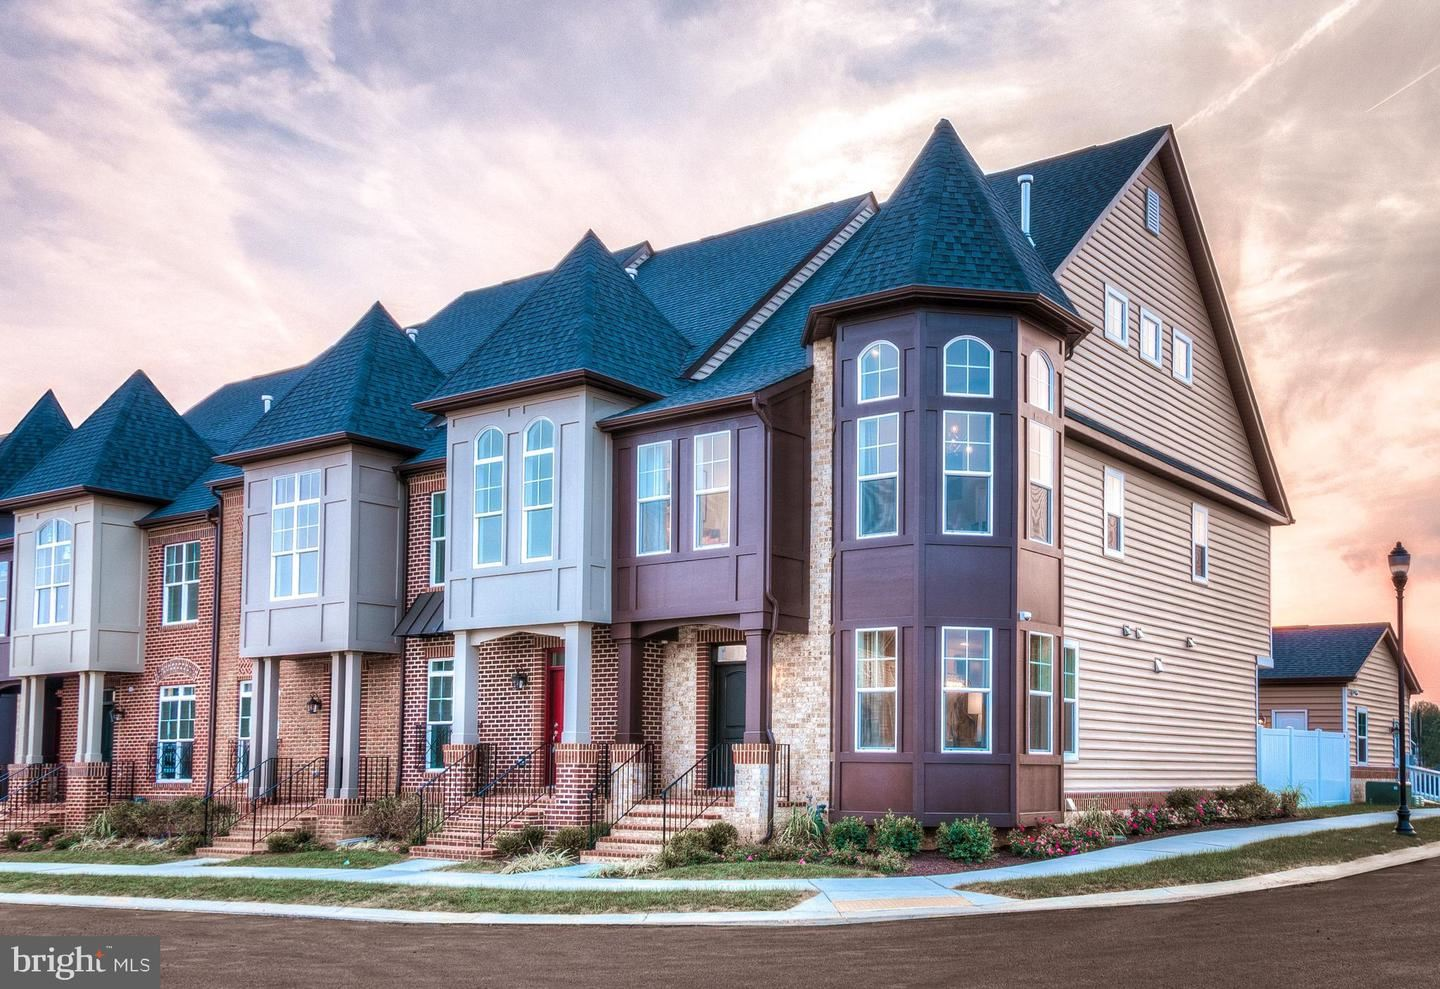 Photo of 901 HOLDEN ROAD #198, FREDERICK, MD 21701 (MLS # MDFR278204)